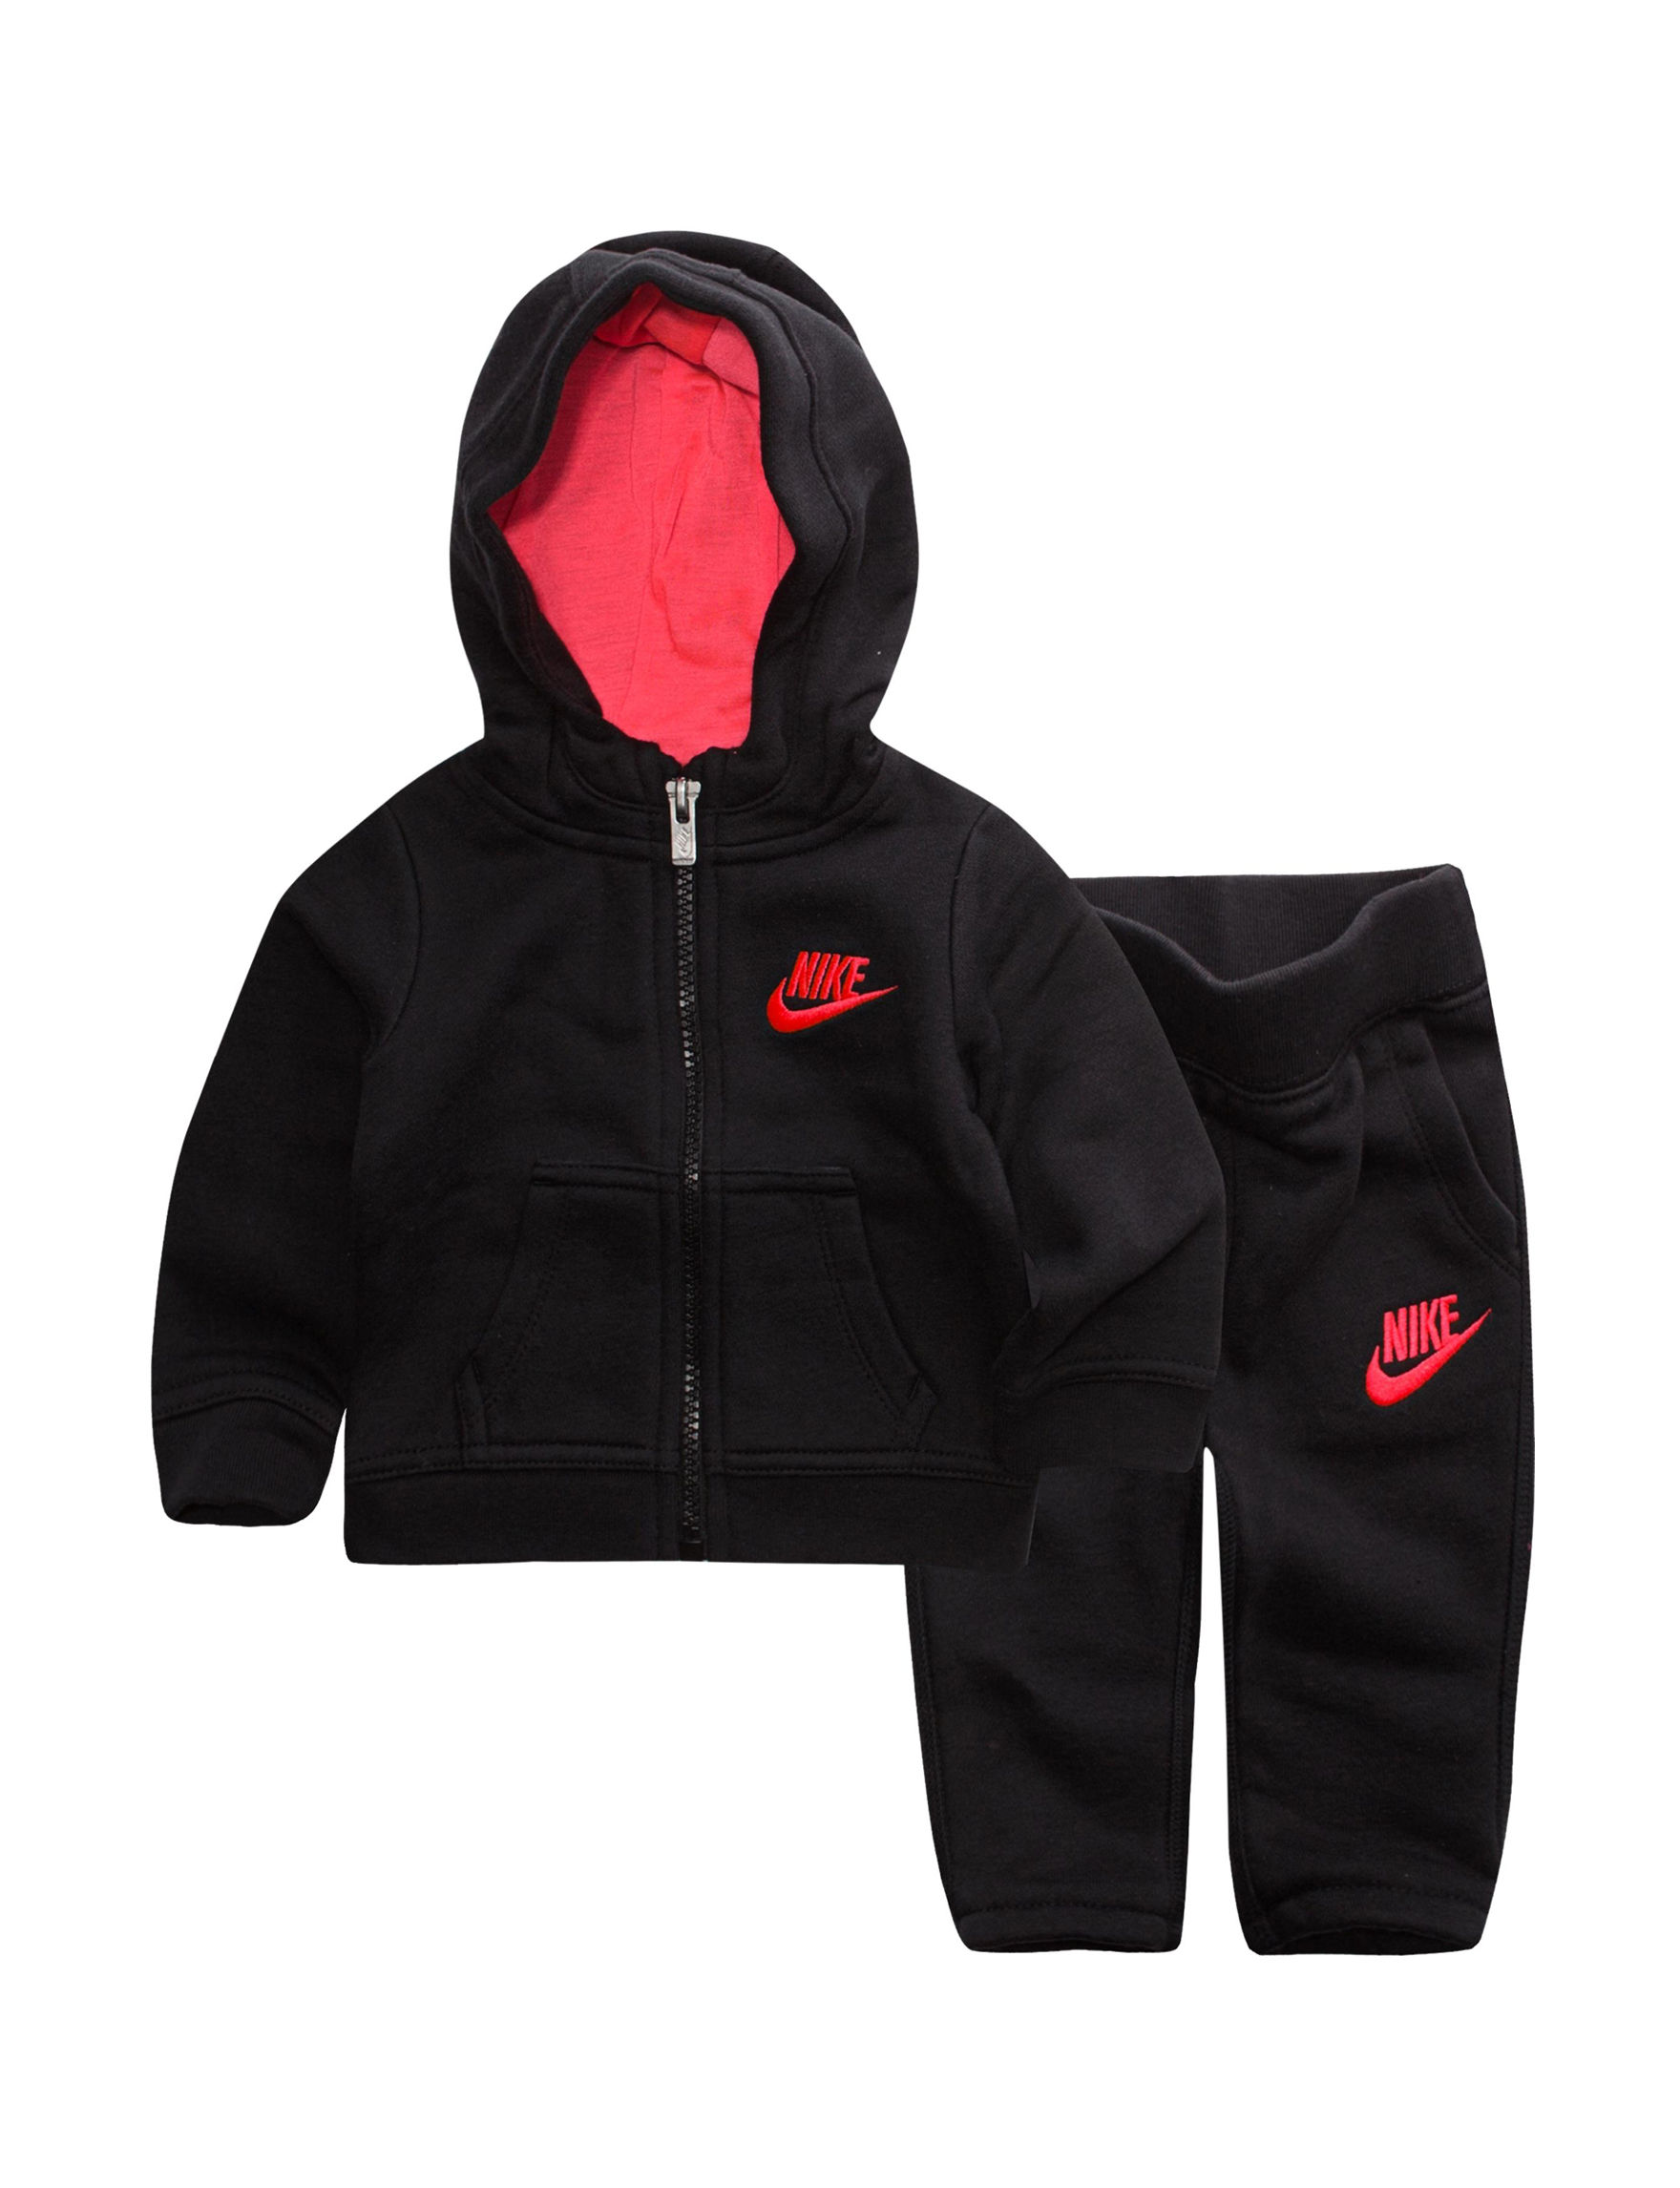 Nike Black Fleece & Soft Shell Jackets